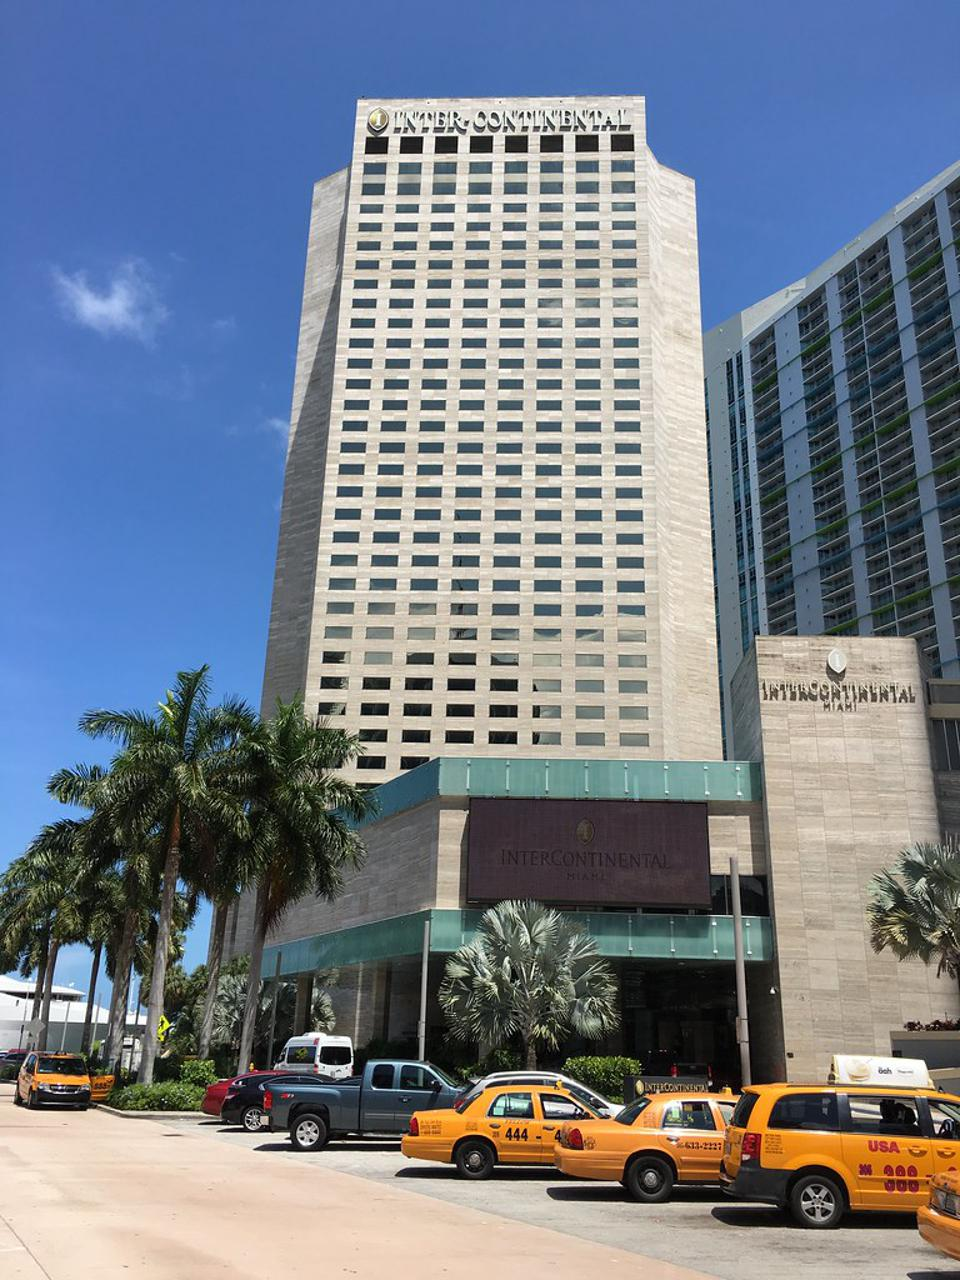 Intercontinental Hotel Is Central To The Downtown Miami Experience